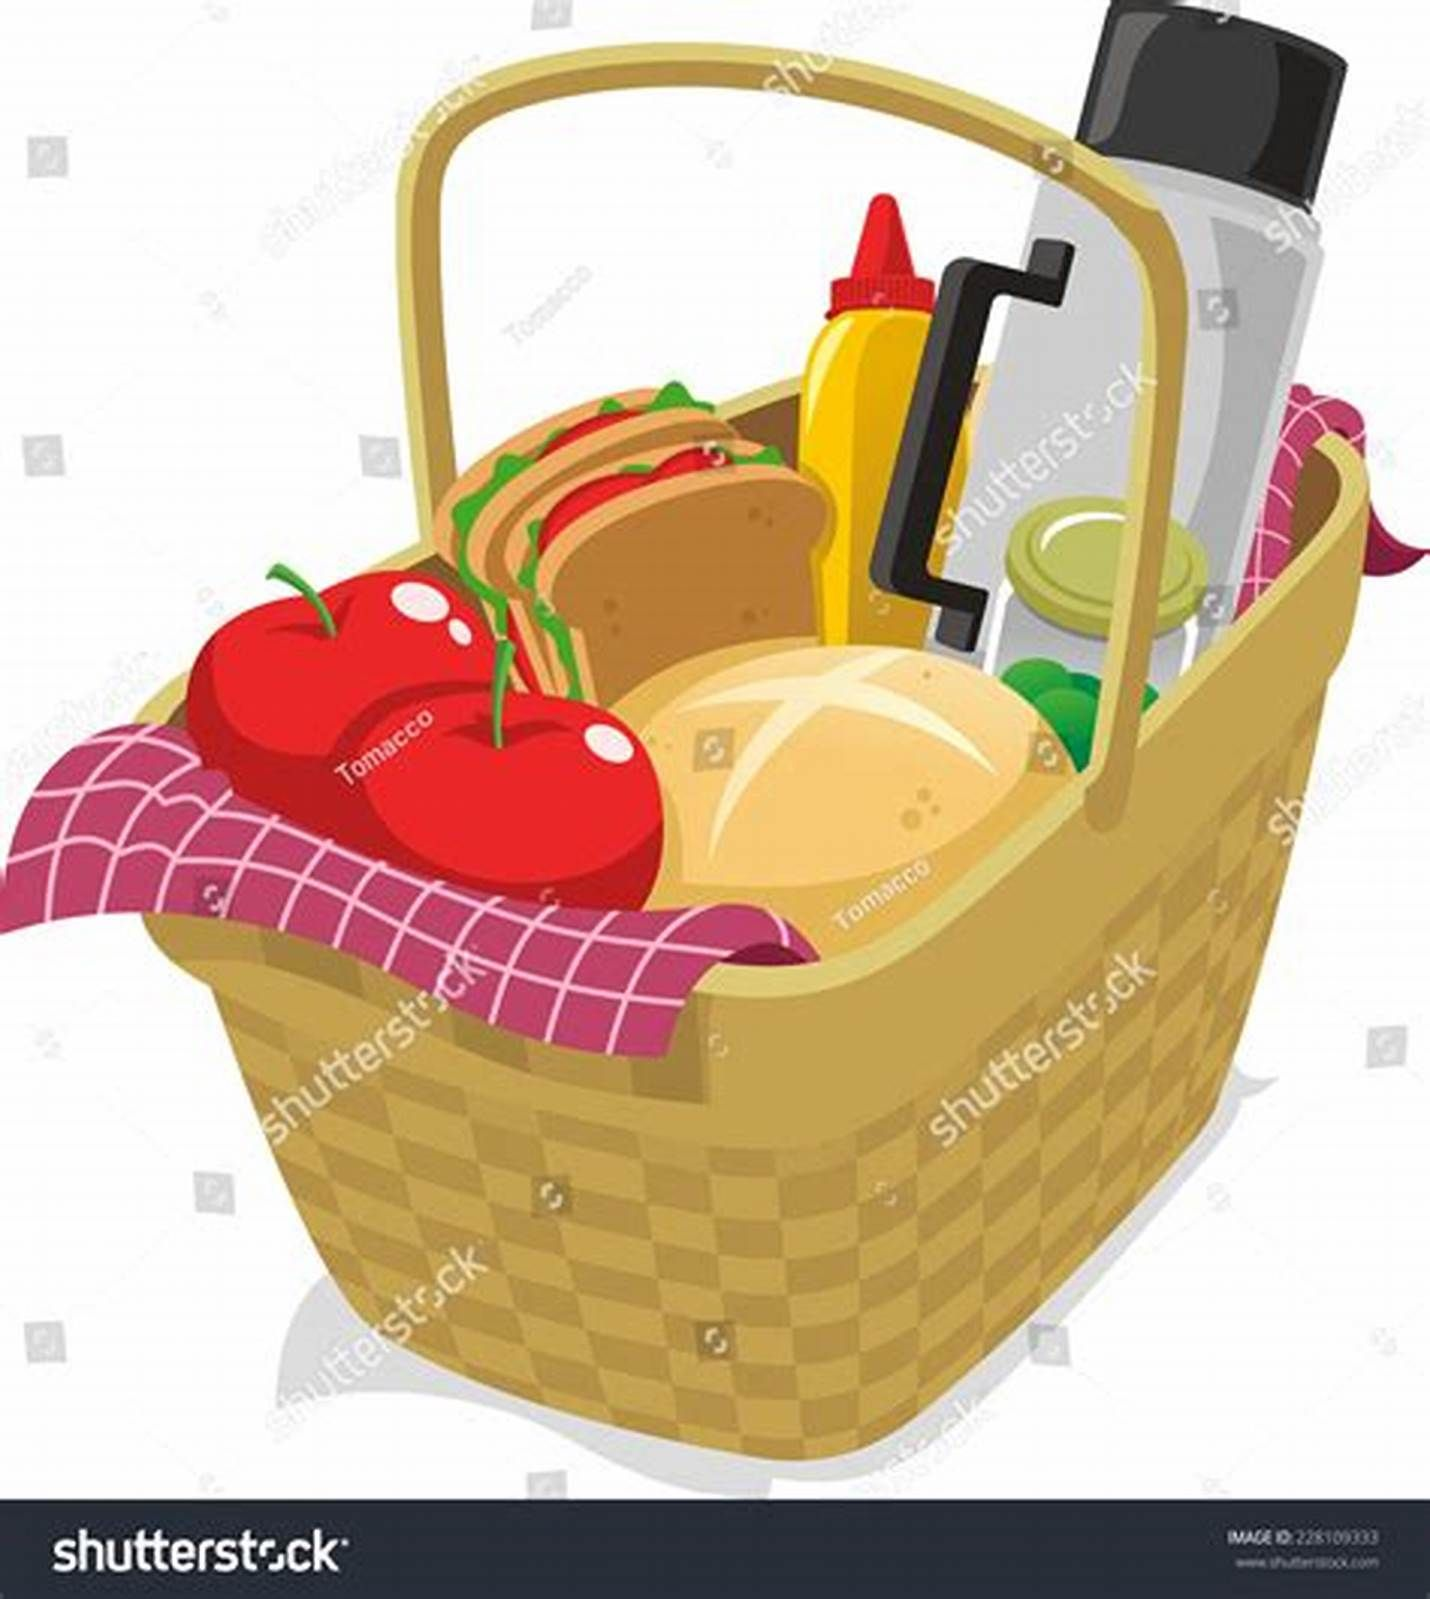 See The Source Image Picnic Images Food Cartoon Picnic Basket